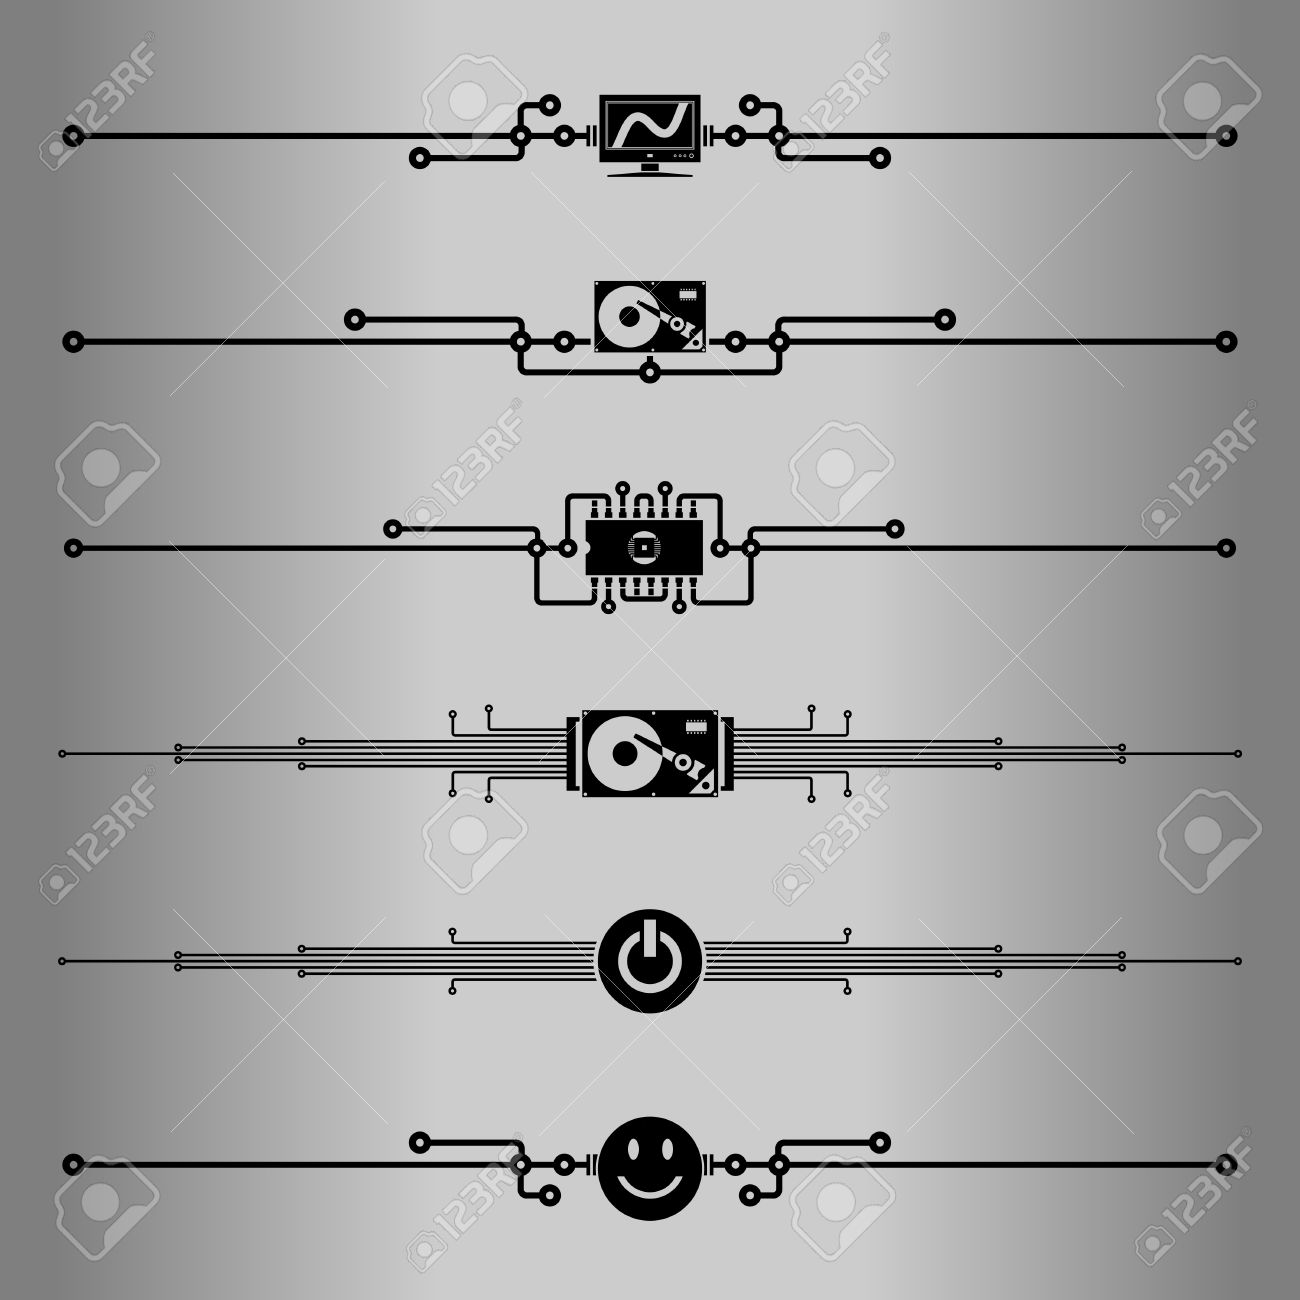 Circuit Board Vector Line Everything About Wiring Diagram Background Royalty Free Stock Image 24974606 Images Gallery